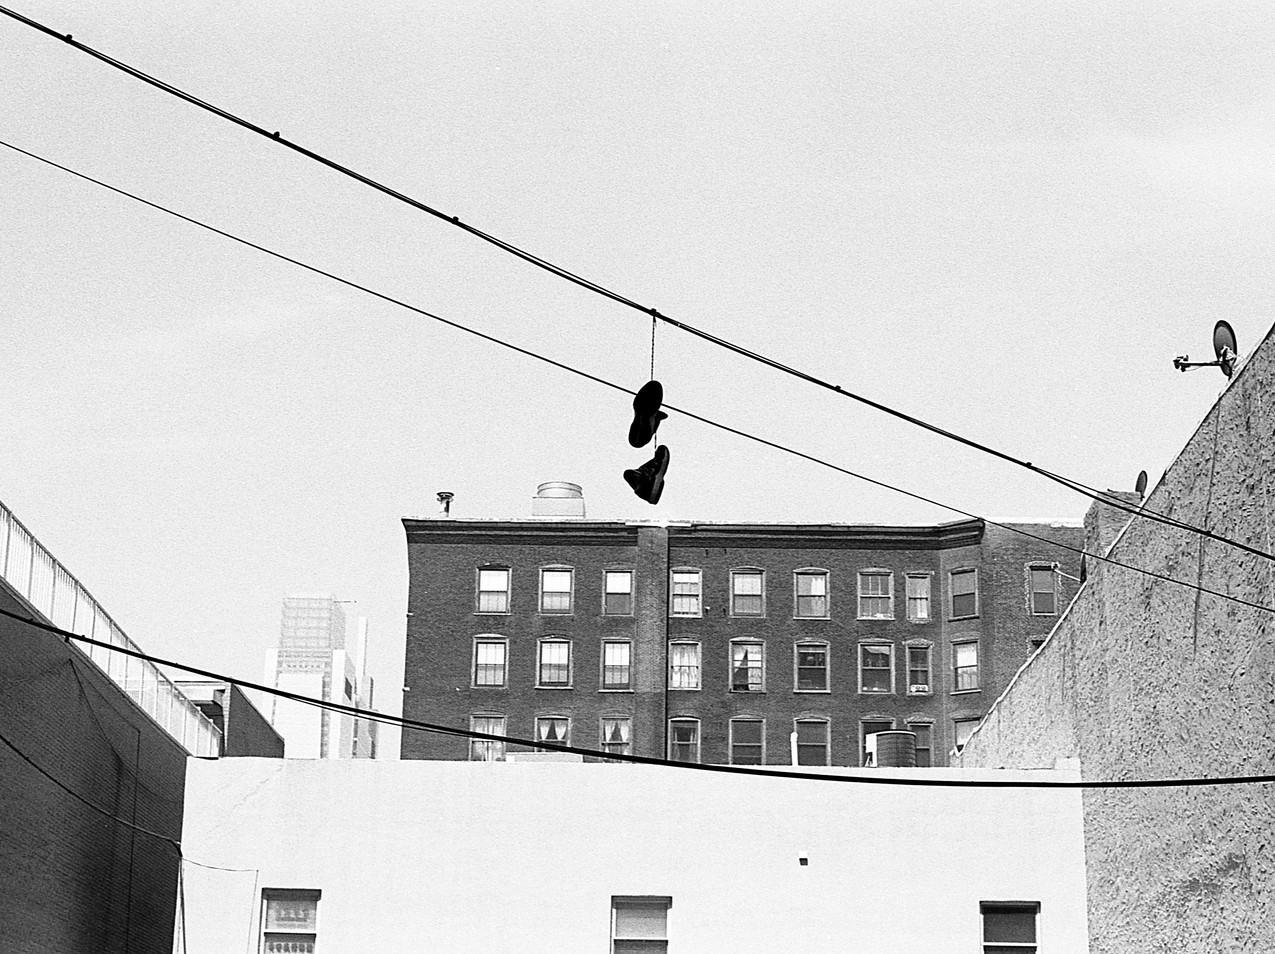 Shoes on wire.  Chinatown.  Philadelphia, PA.